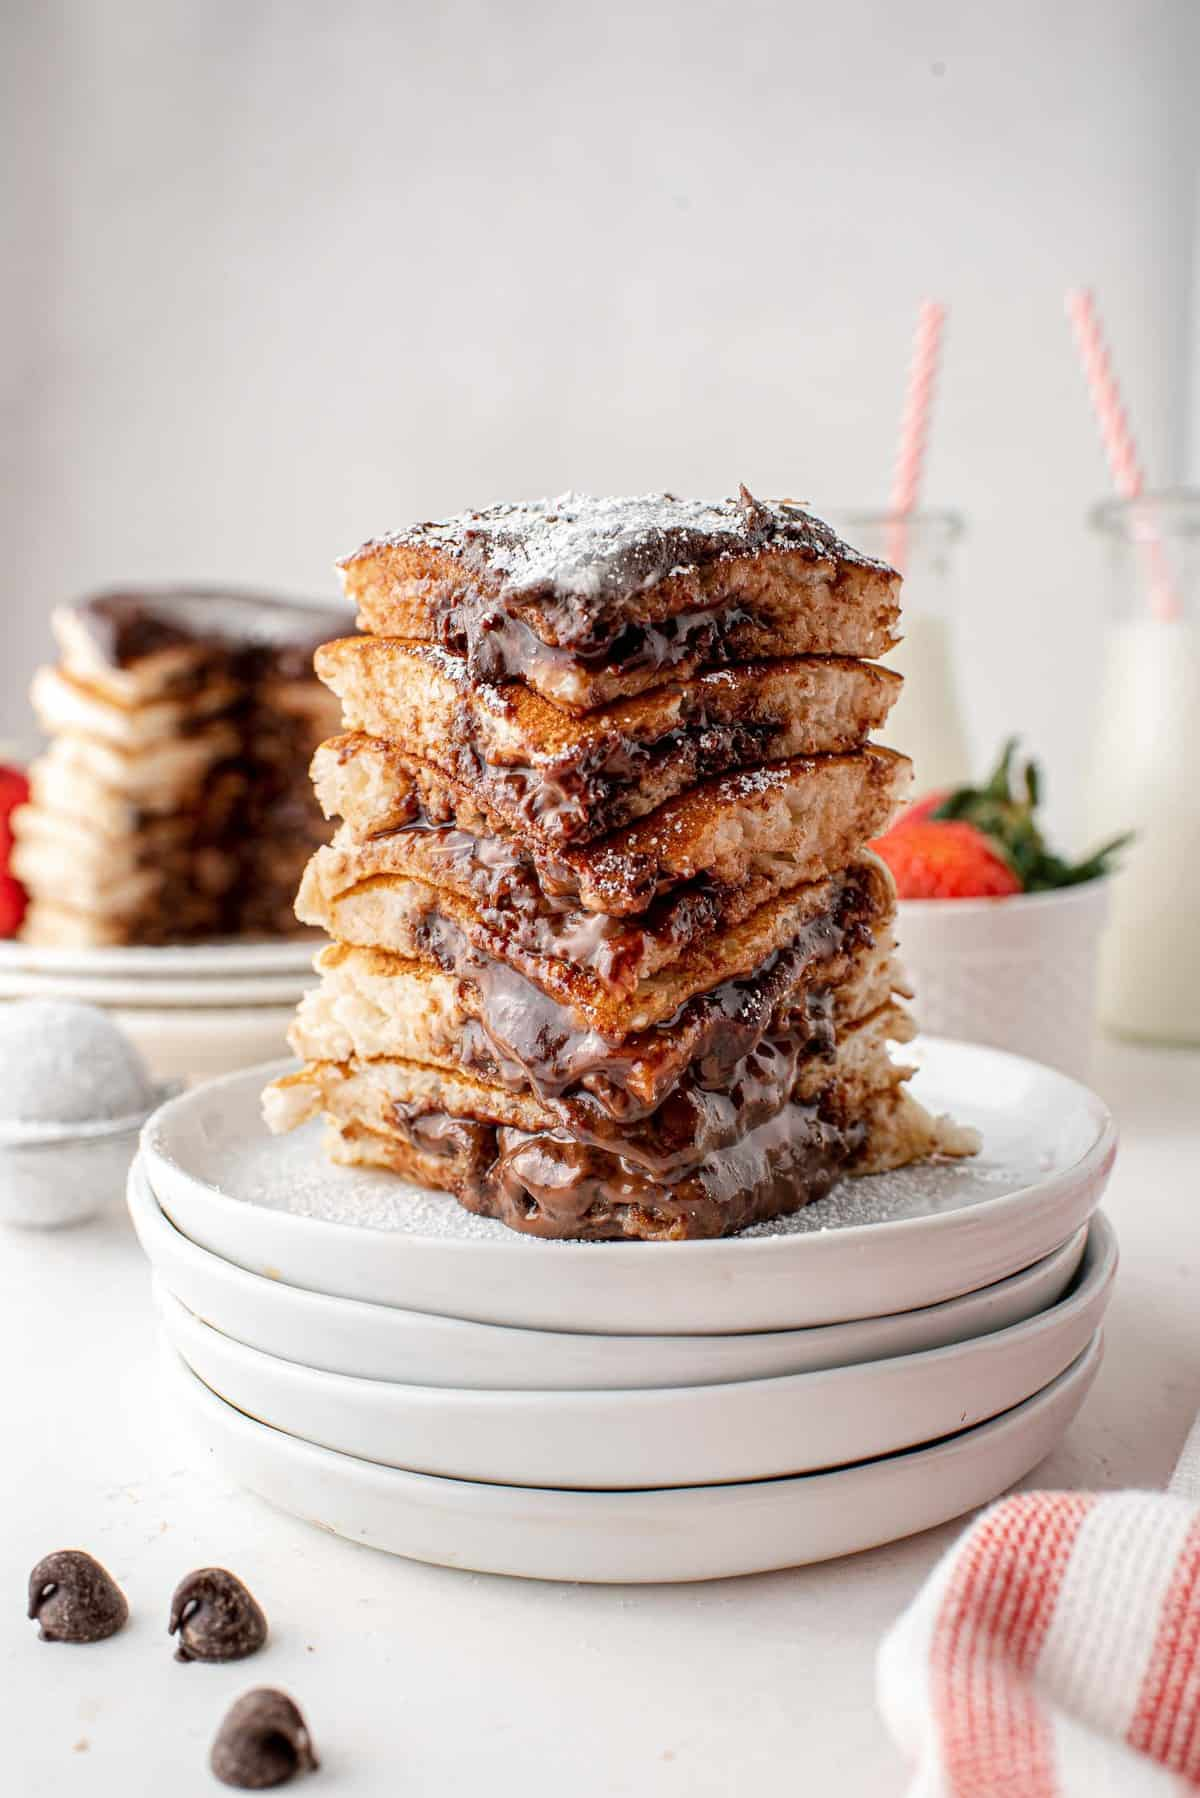 Wedge of a stack of nutella pancakes.